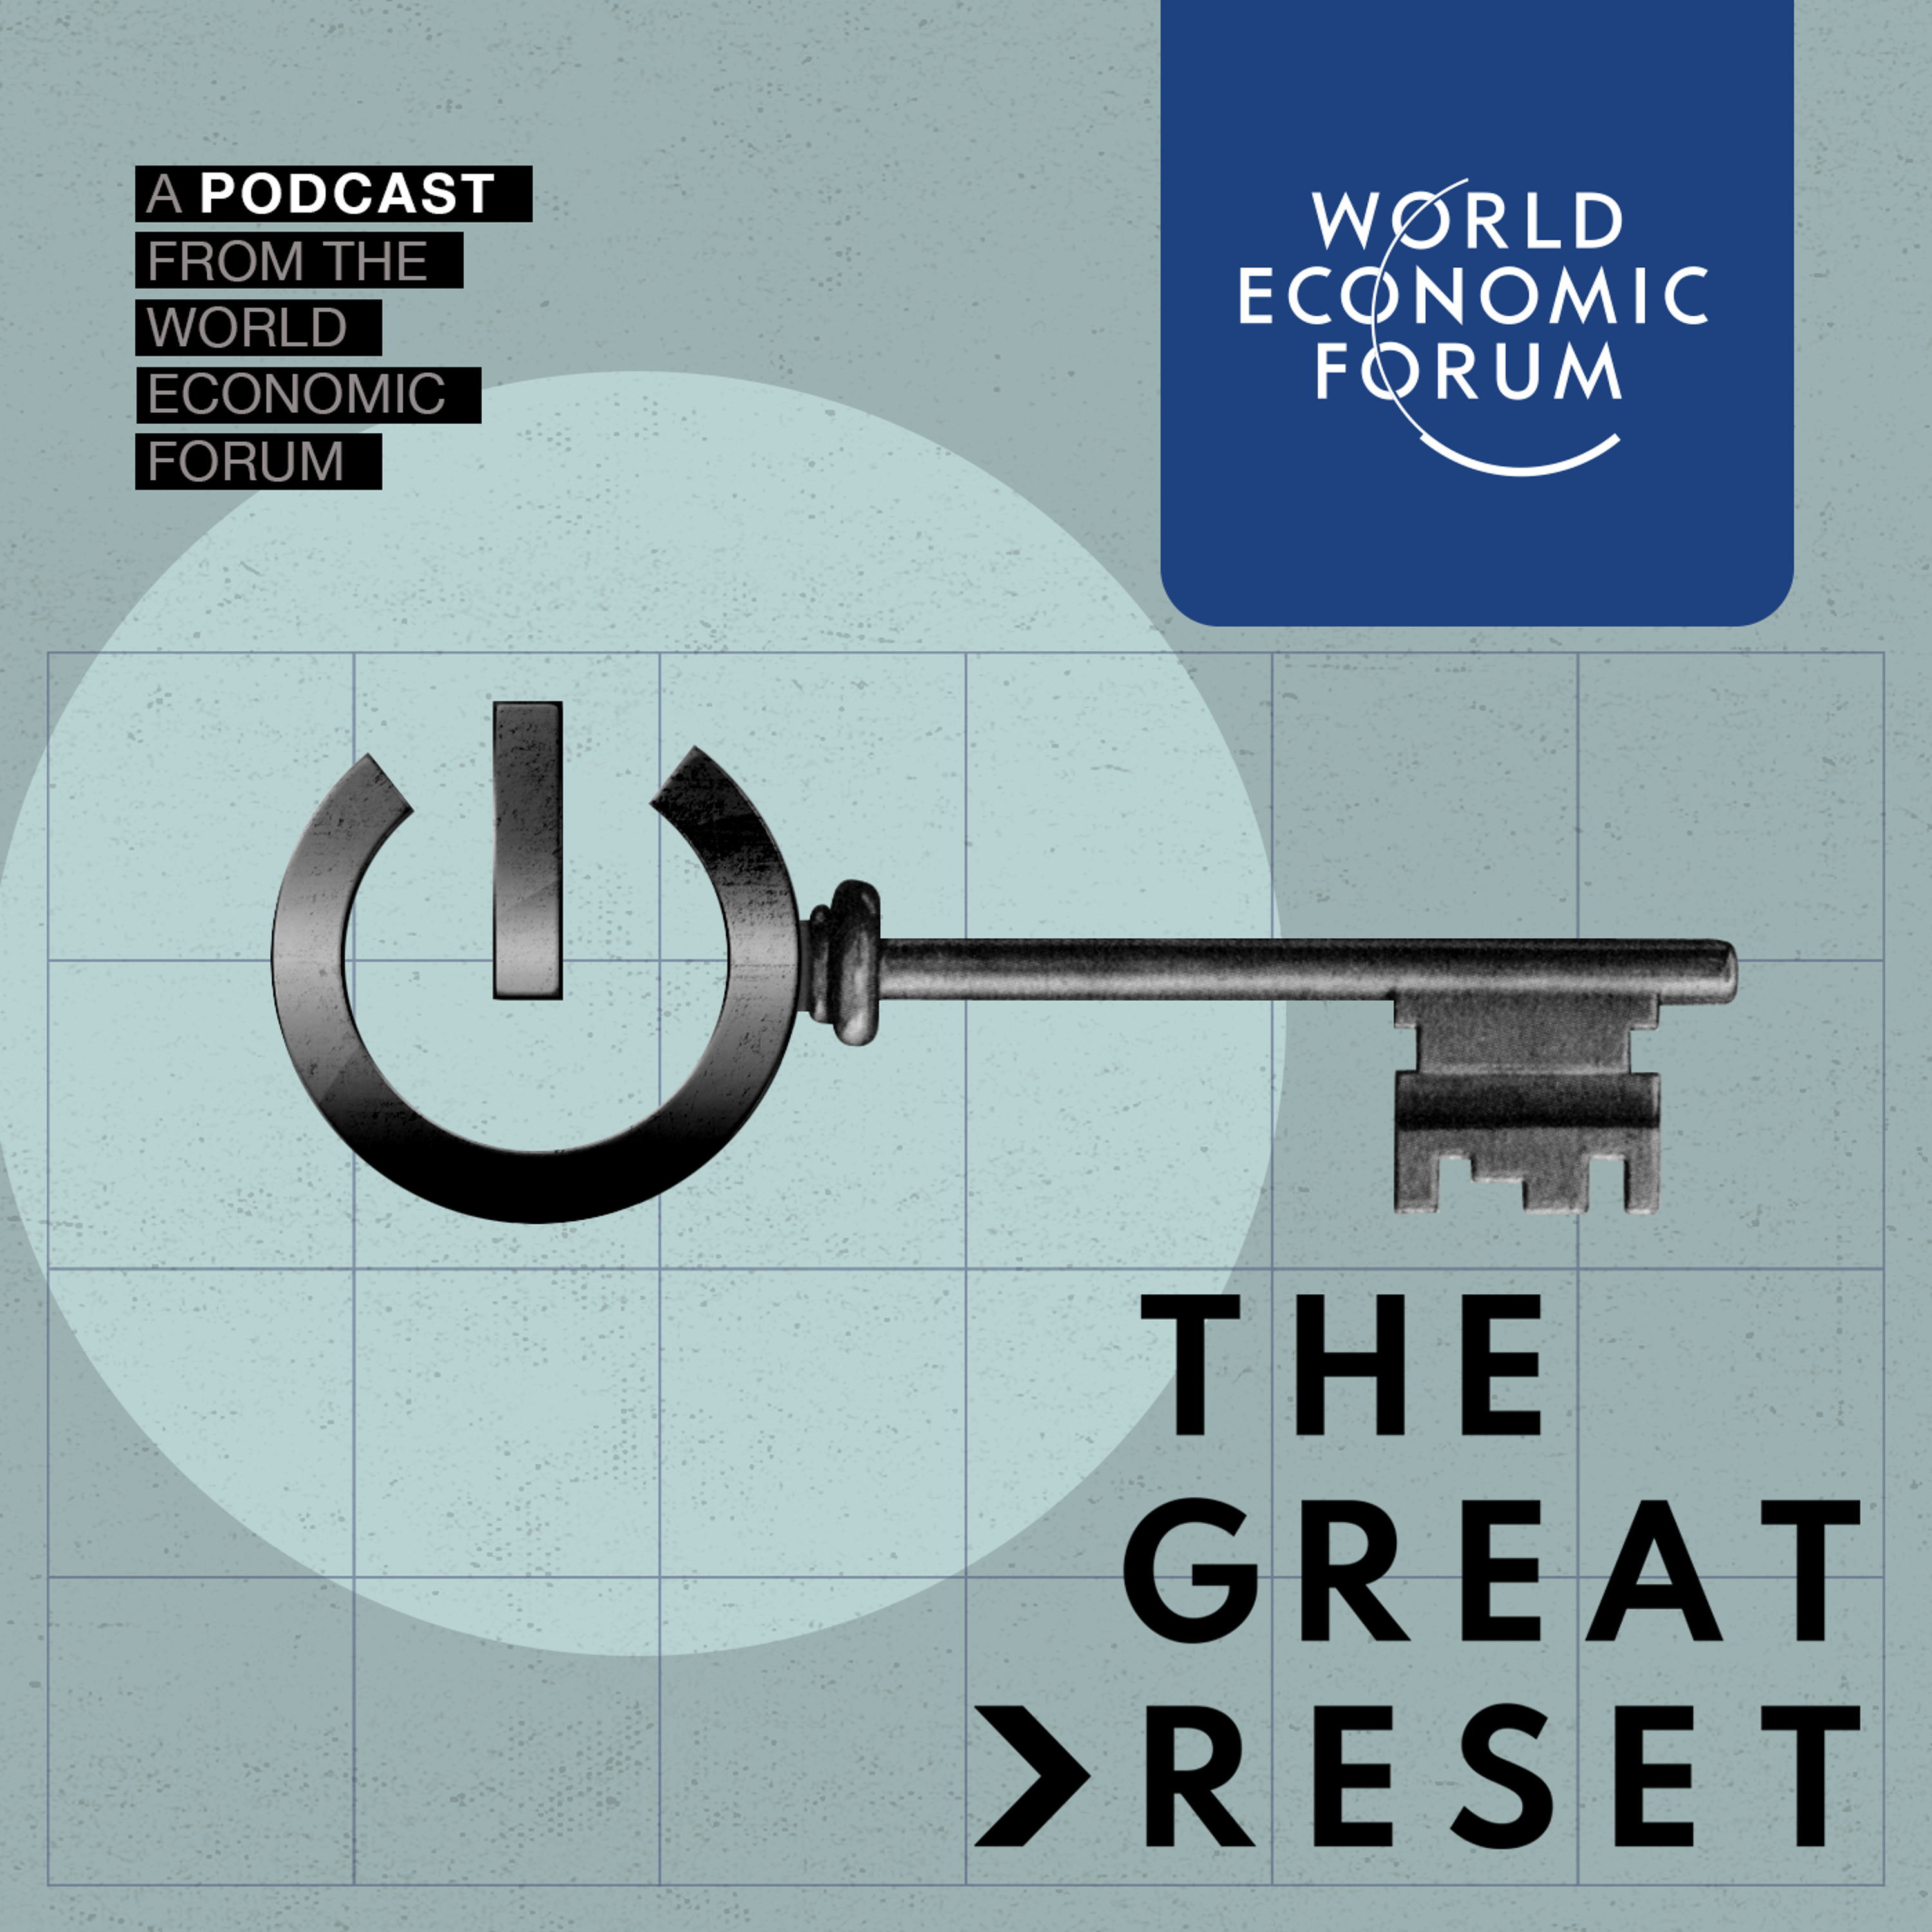 The Great Reset: Mission Possible